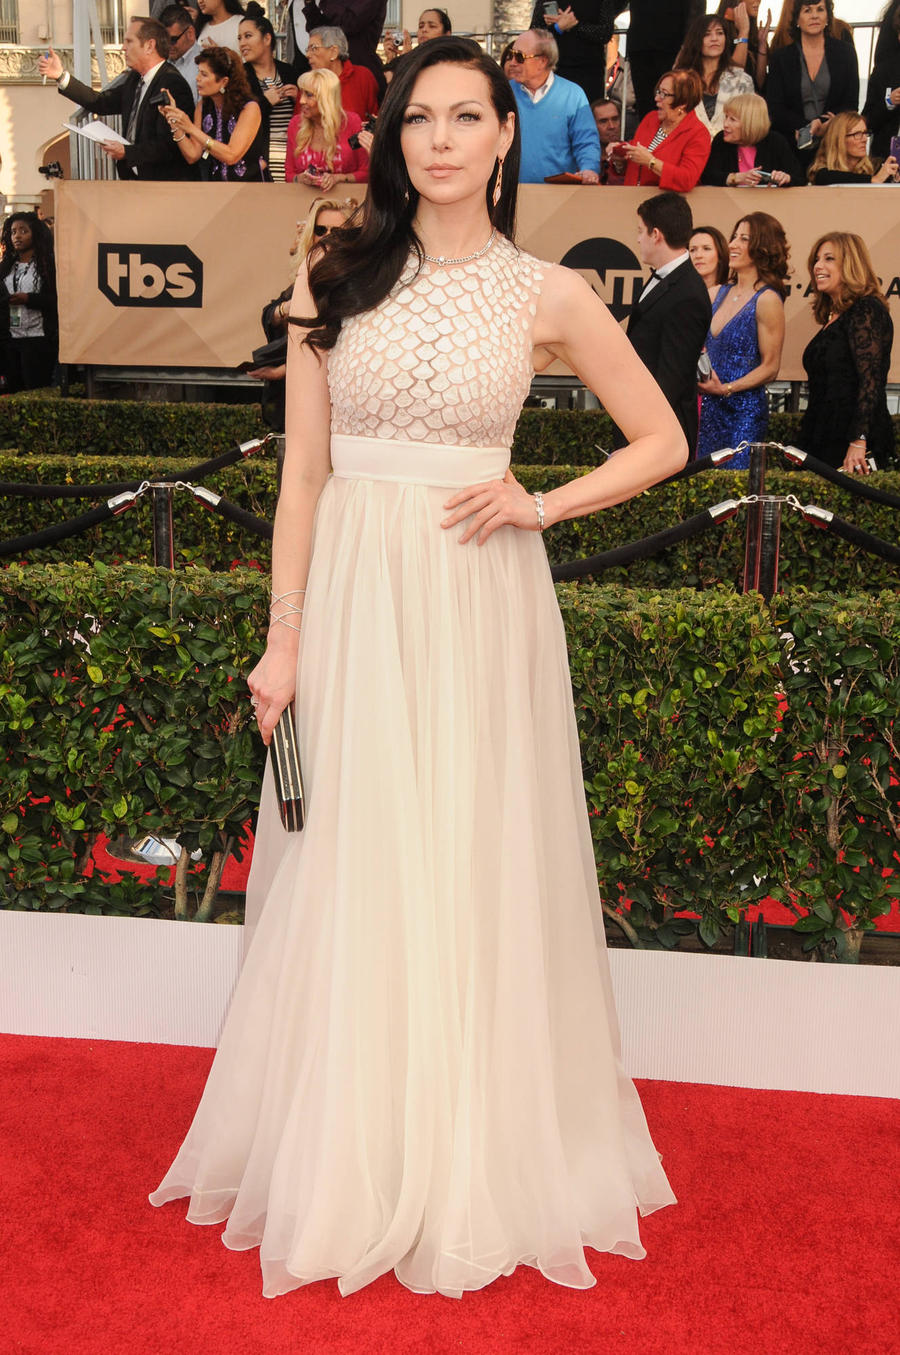 Laura Prepon's Sag Dress Had A Dramatic Journey To The Red Carpet